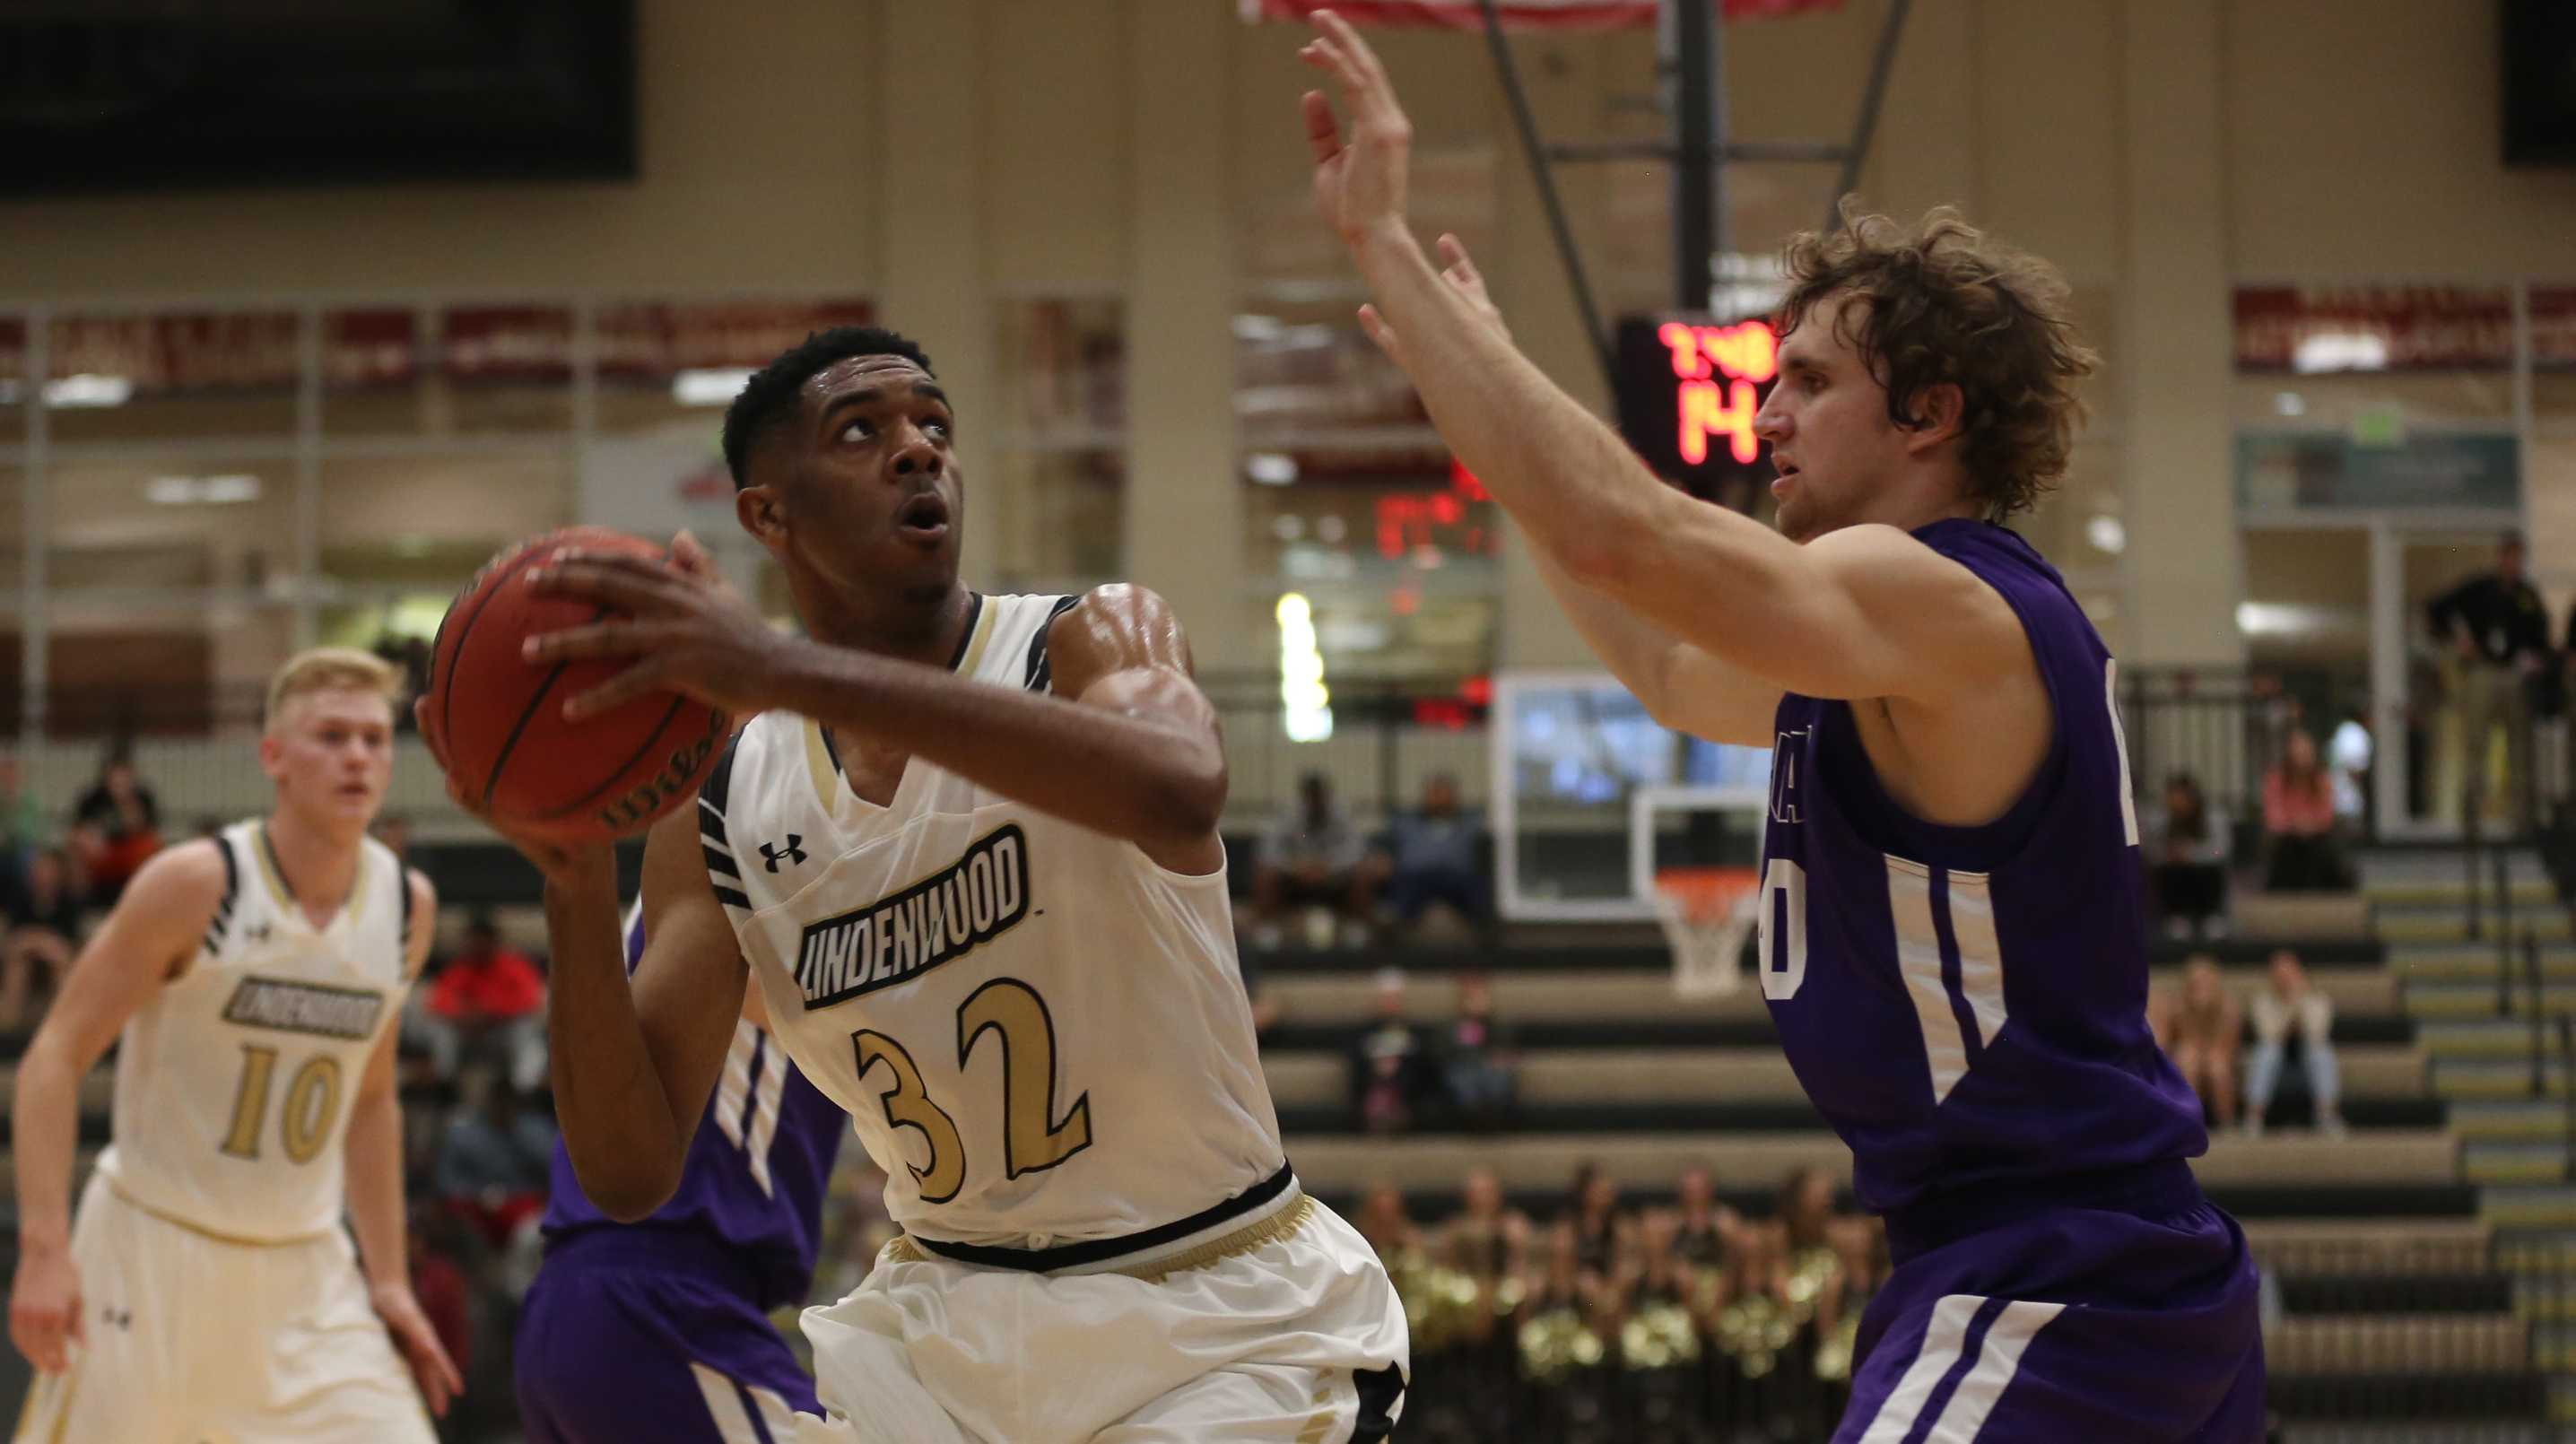 File photo. Lindenwood men's basketball player Dominique Dobbs led Lindenwood in its opening game against Bemidji State in the 2016-17 season with 19 points. Lindenwood defeated Bemidji State 62-44.  Photo by Carly Fristoe